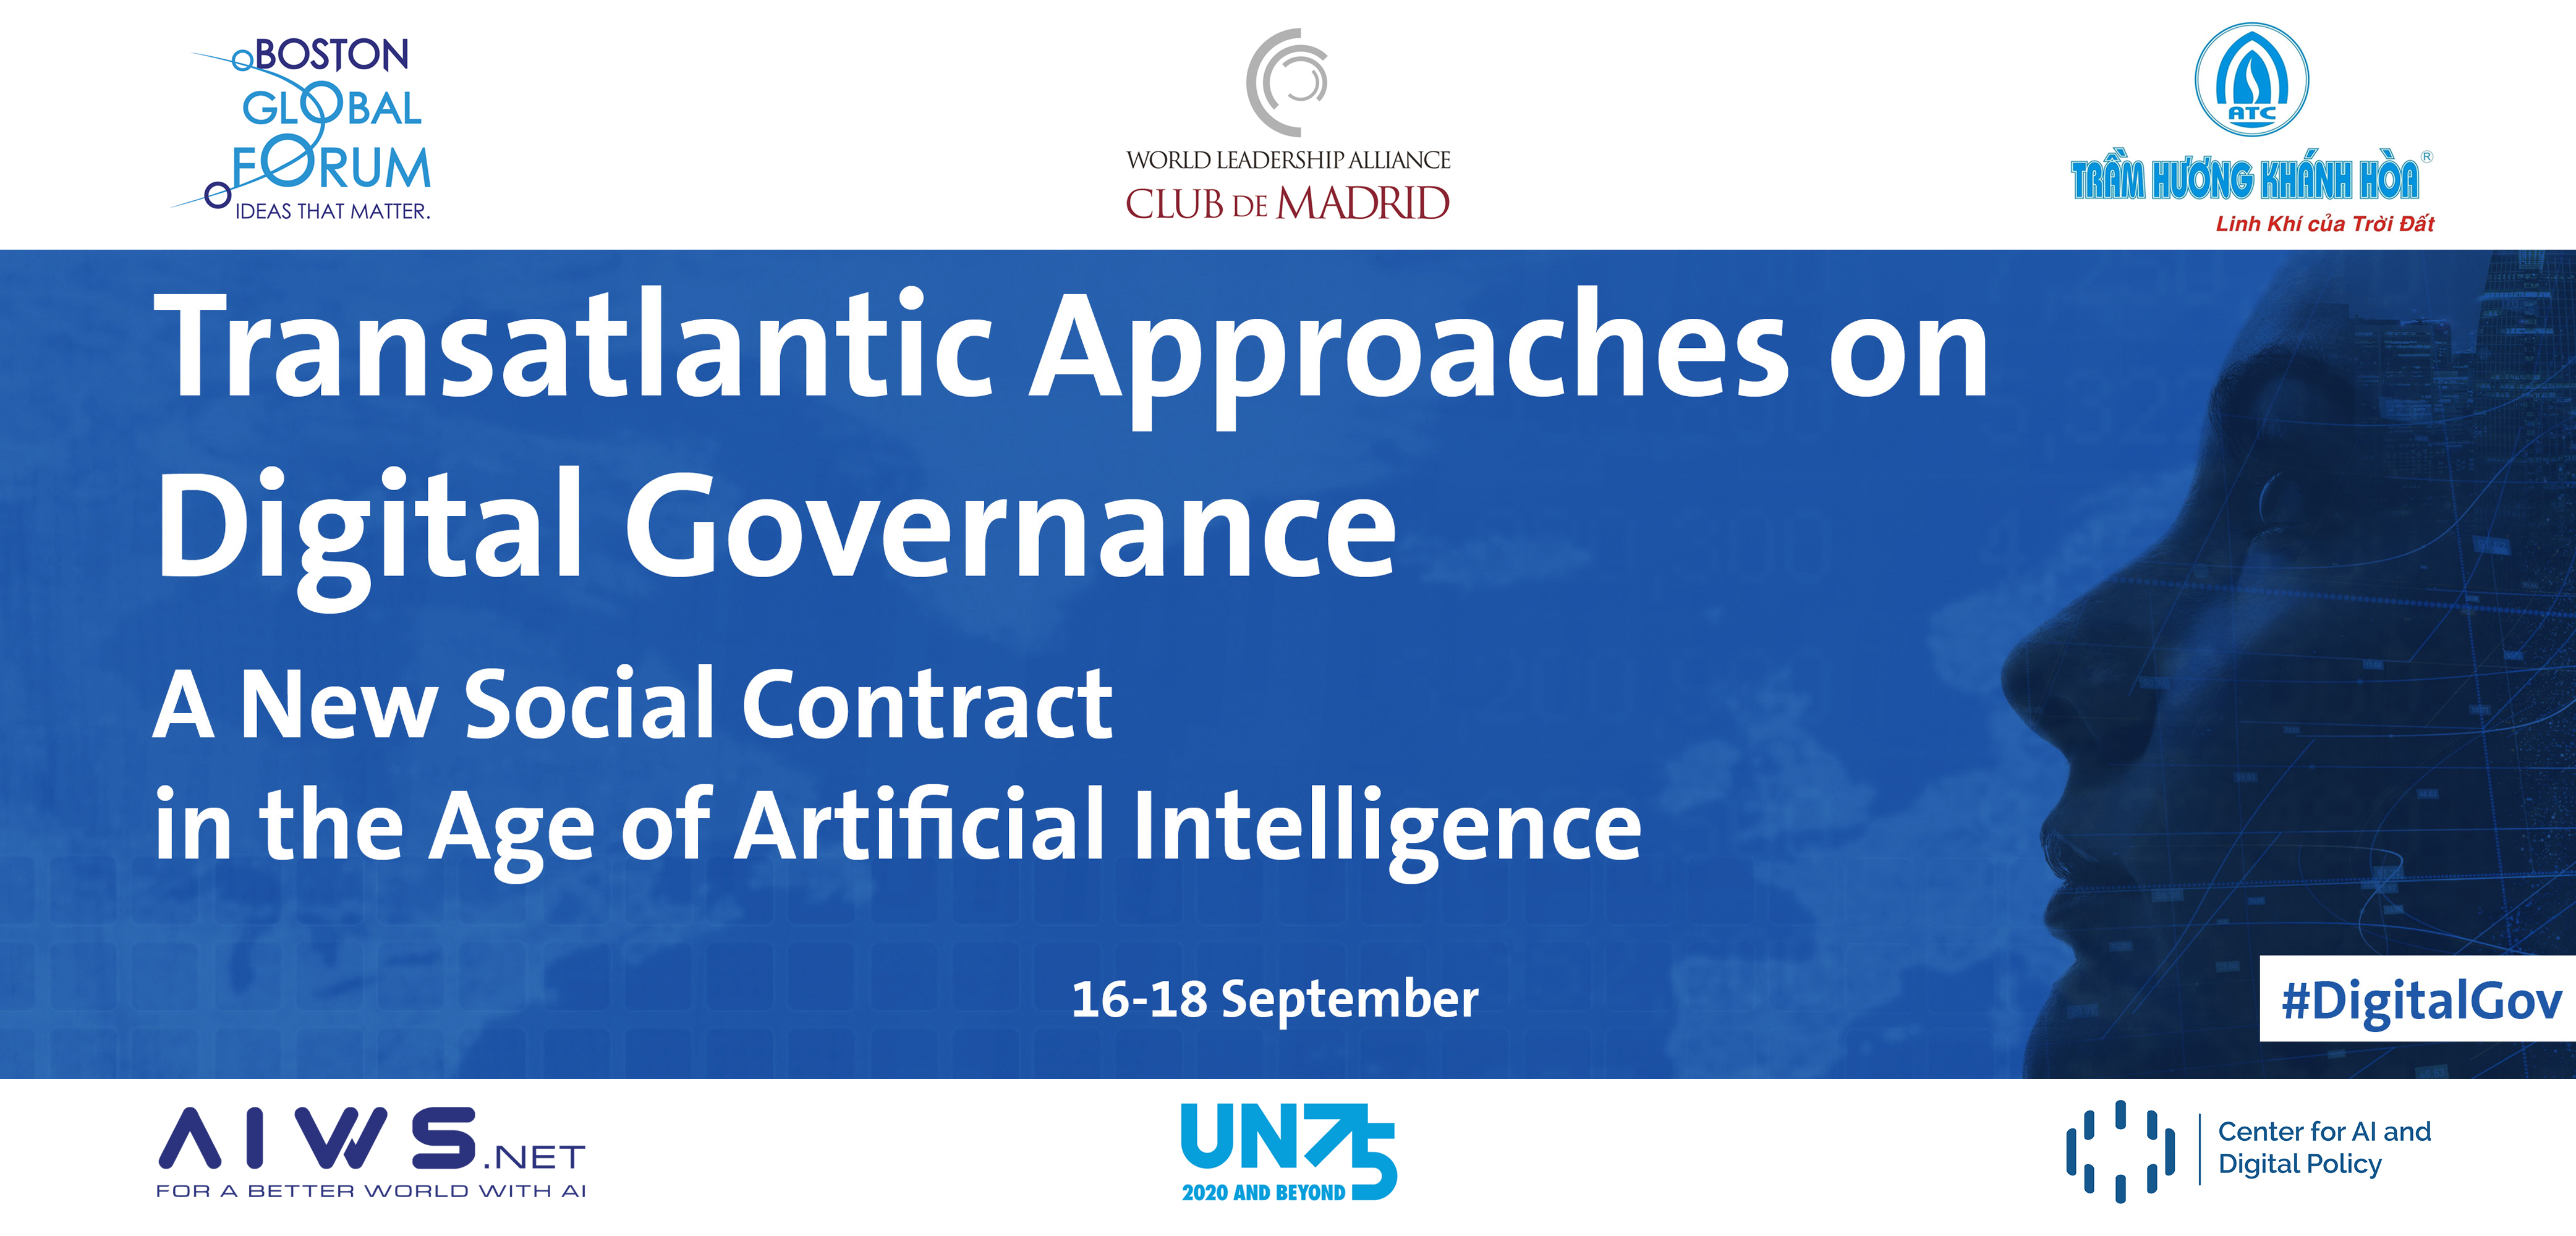 Policy Lab: Transatlantic Approaches on Digital Governance - A New Social Contract on Artificial Intelligence